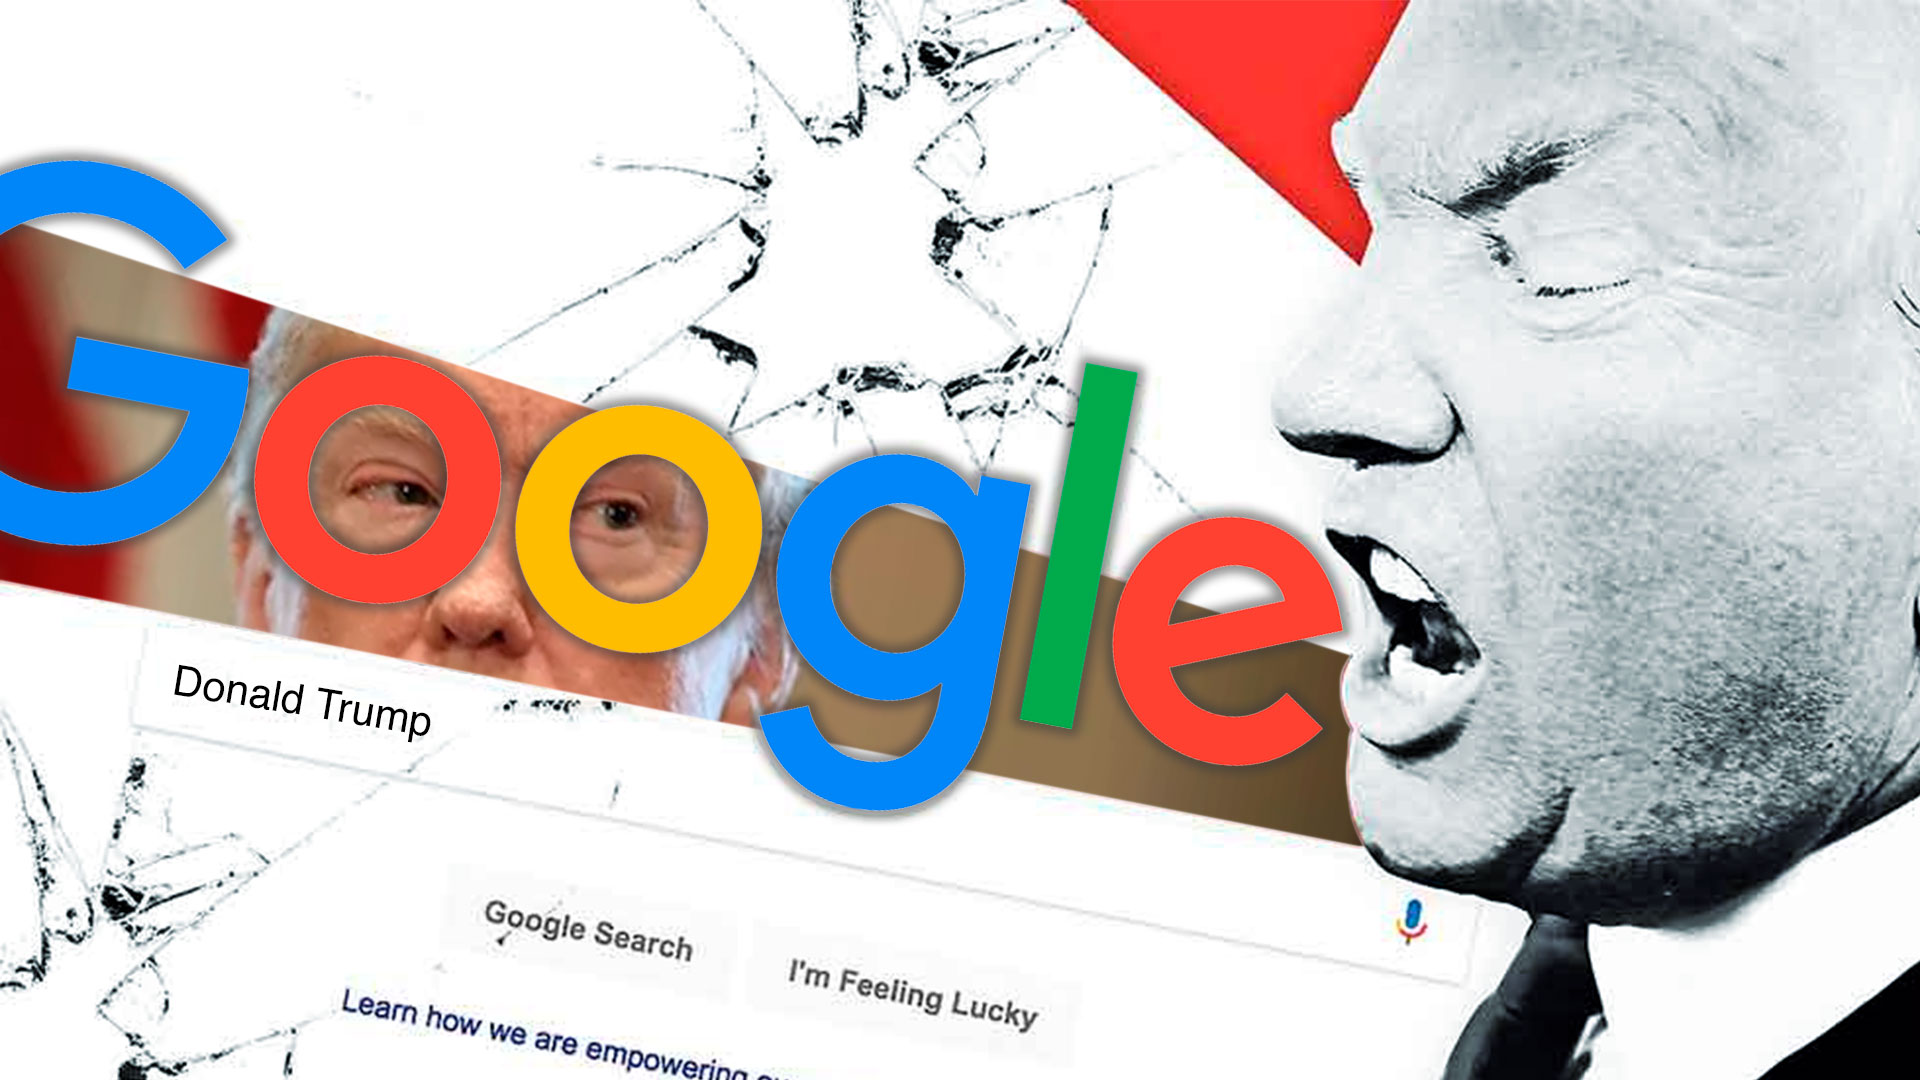 Donald trump-google-reputacion en internet-orm